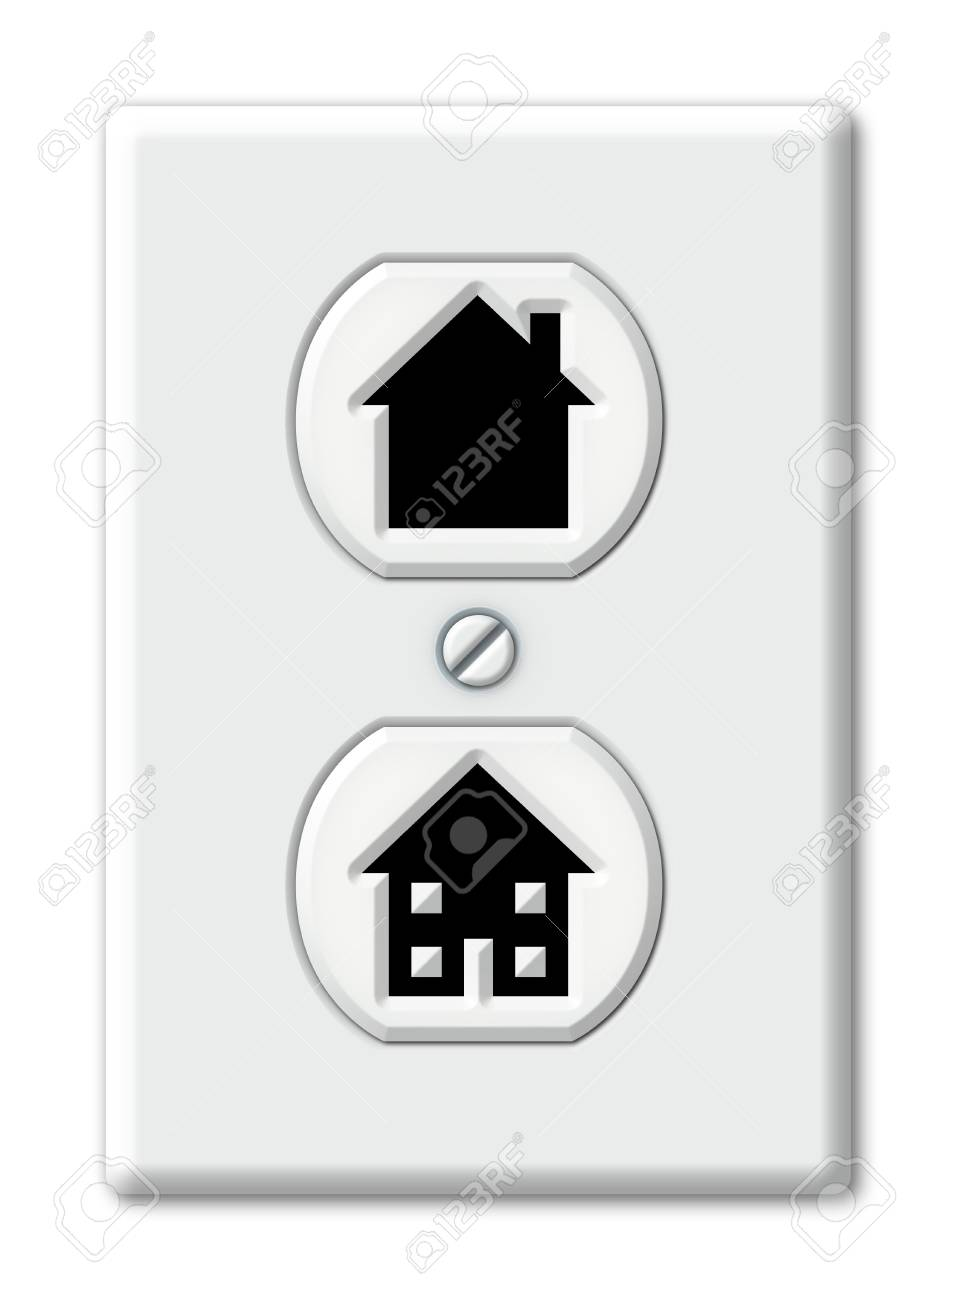 6434933ff764 Illustration of an electrical outlet with house shapes Stock Illustration -  18081786